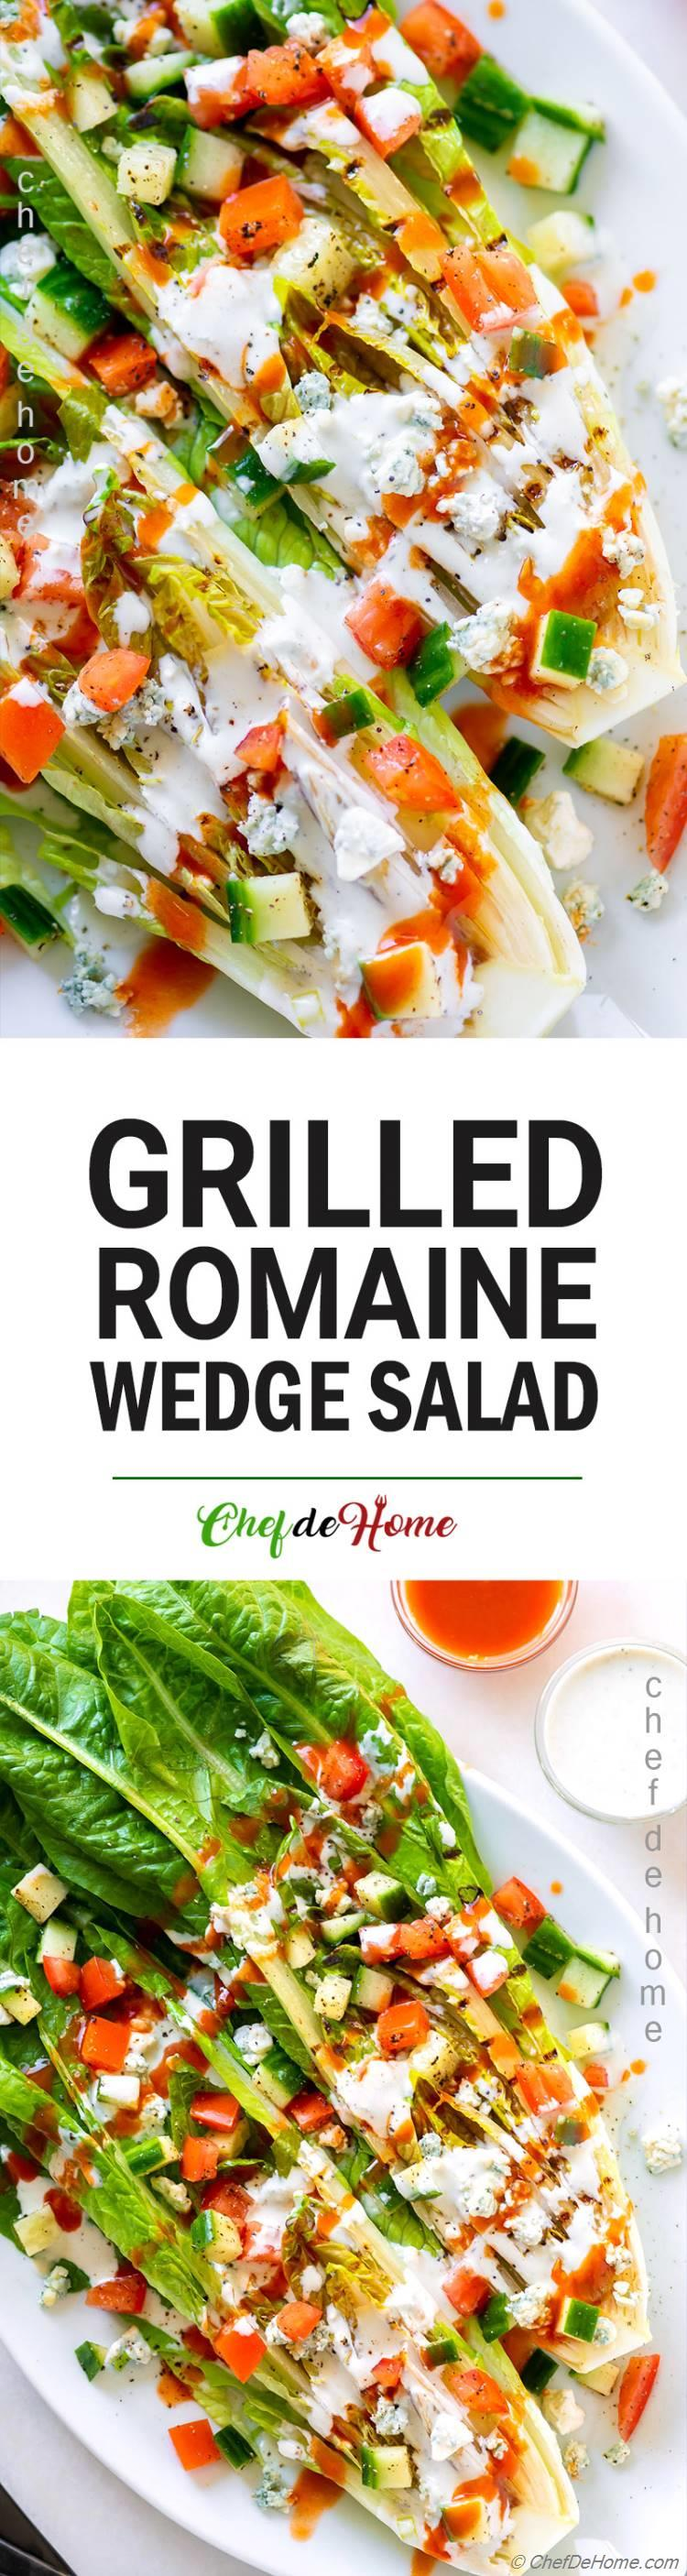 Romaine Wedge Salad with Blue Cheese Cucumber and Tomato